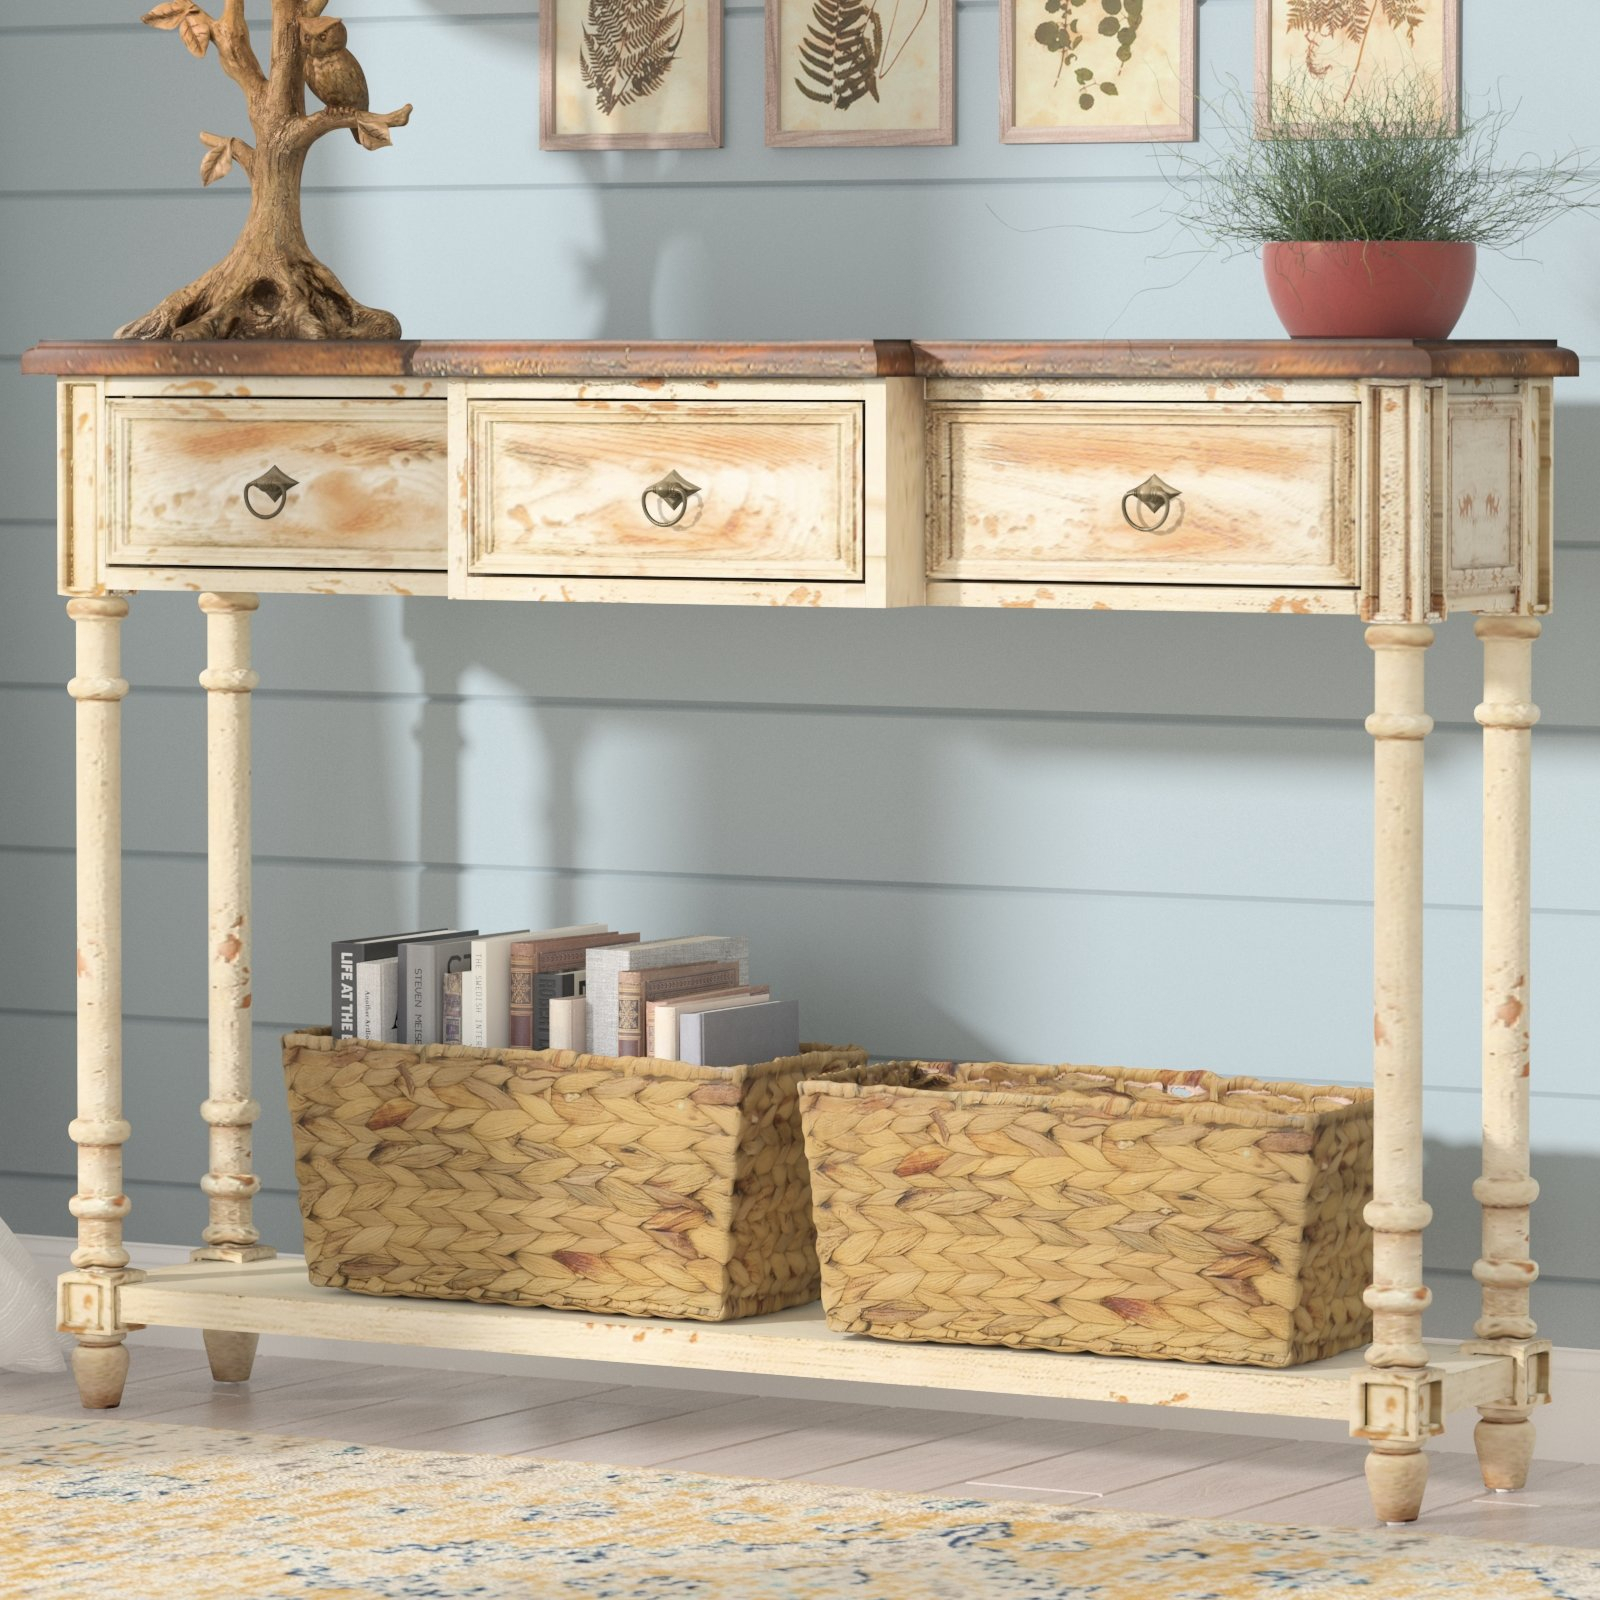 Distressed Finish Console Tables You'll Love | Wayfair in Antique White Distressed Console Tables (Image 7 of 30)